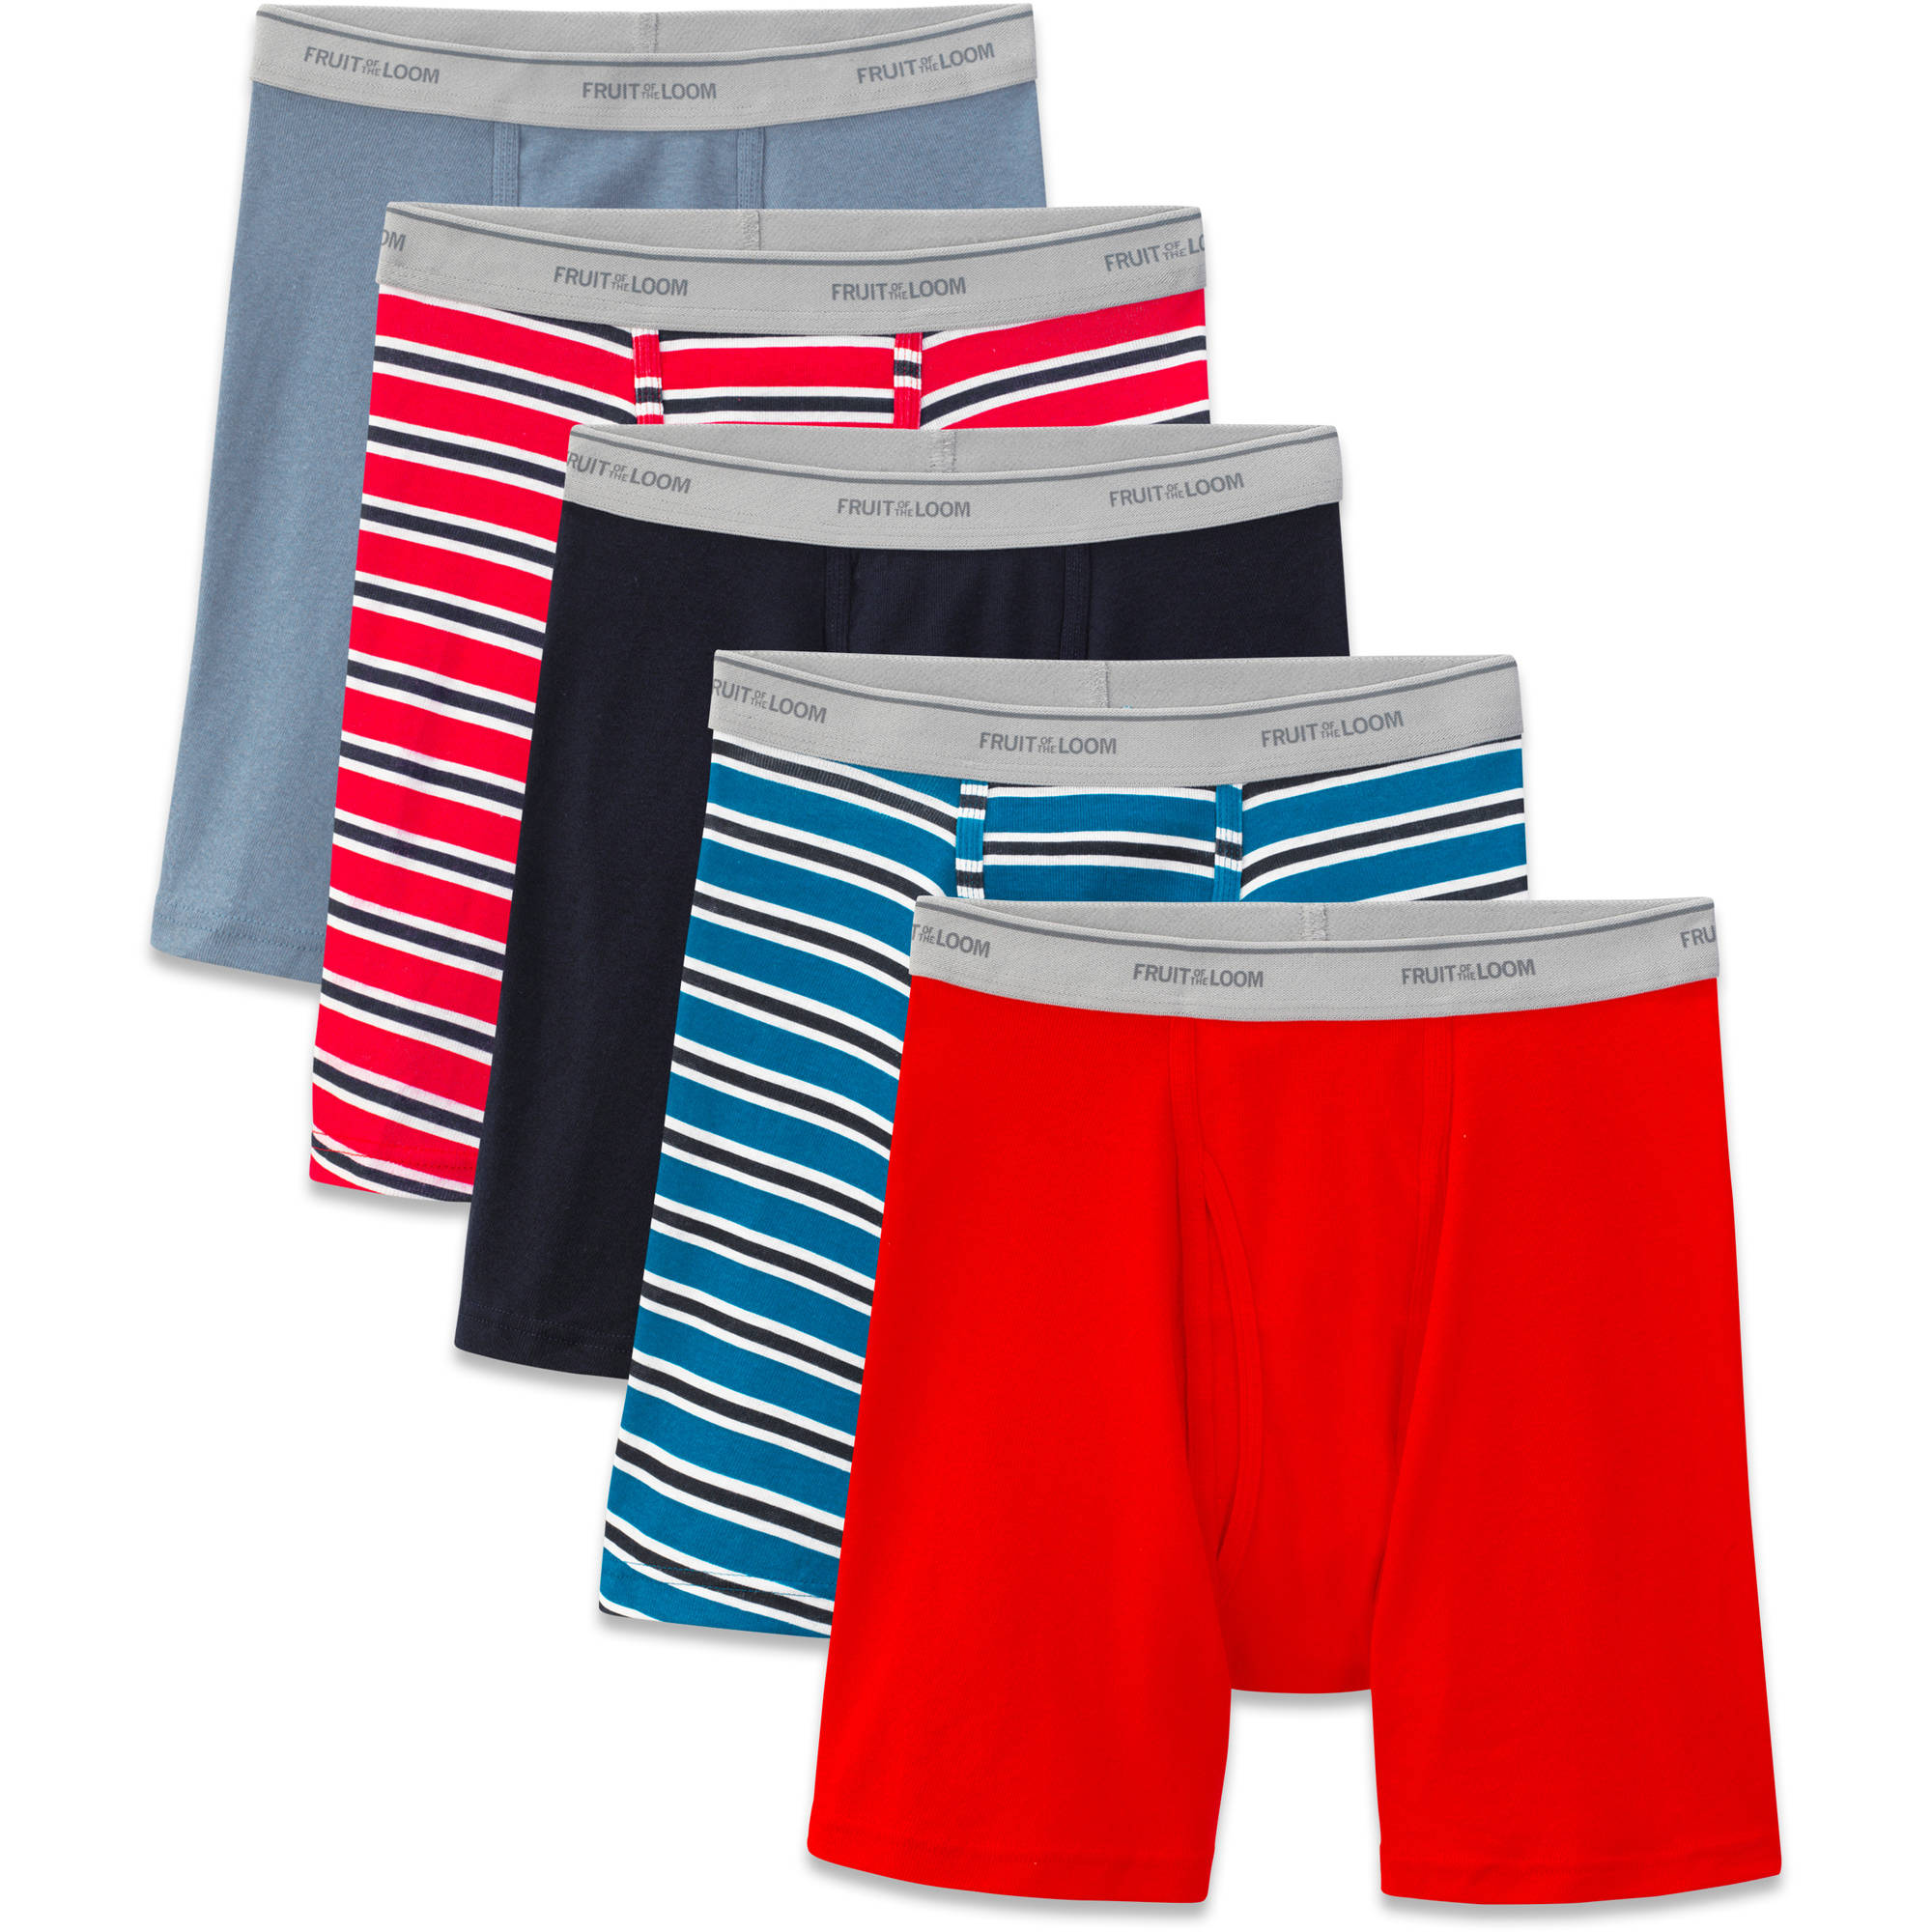 Fruit of the Loom Men's Stripes and Solids Boxer Briefs, 5-Pack by Fruit Of The Loom Men's Underwear